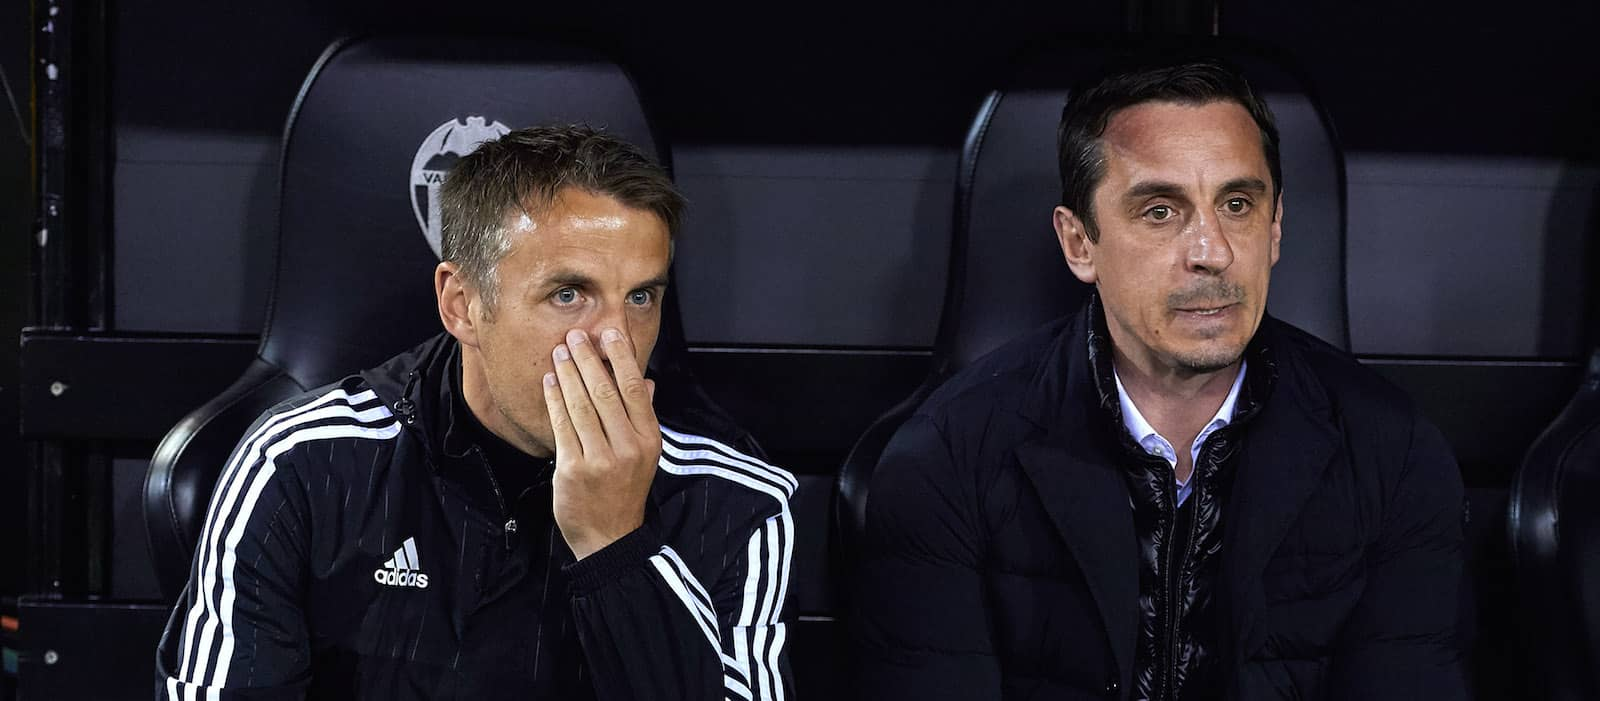 Gary Neville trolls Liverpool with chant after Champions League Final defeat